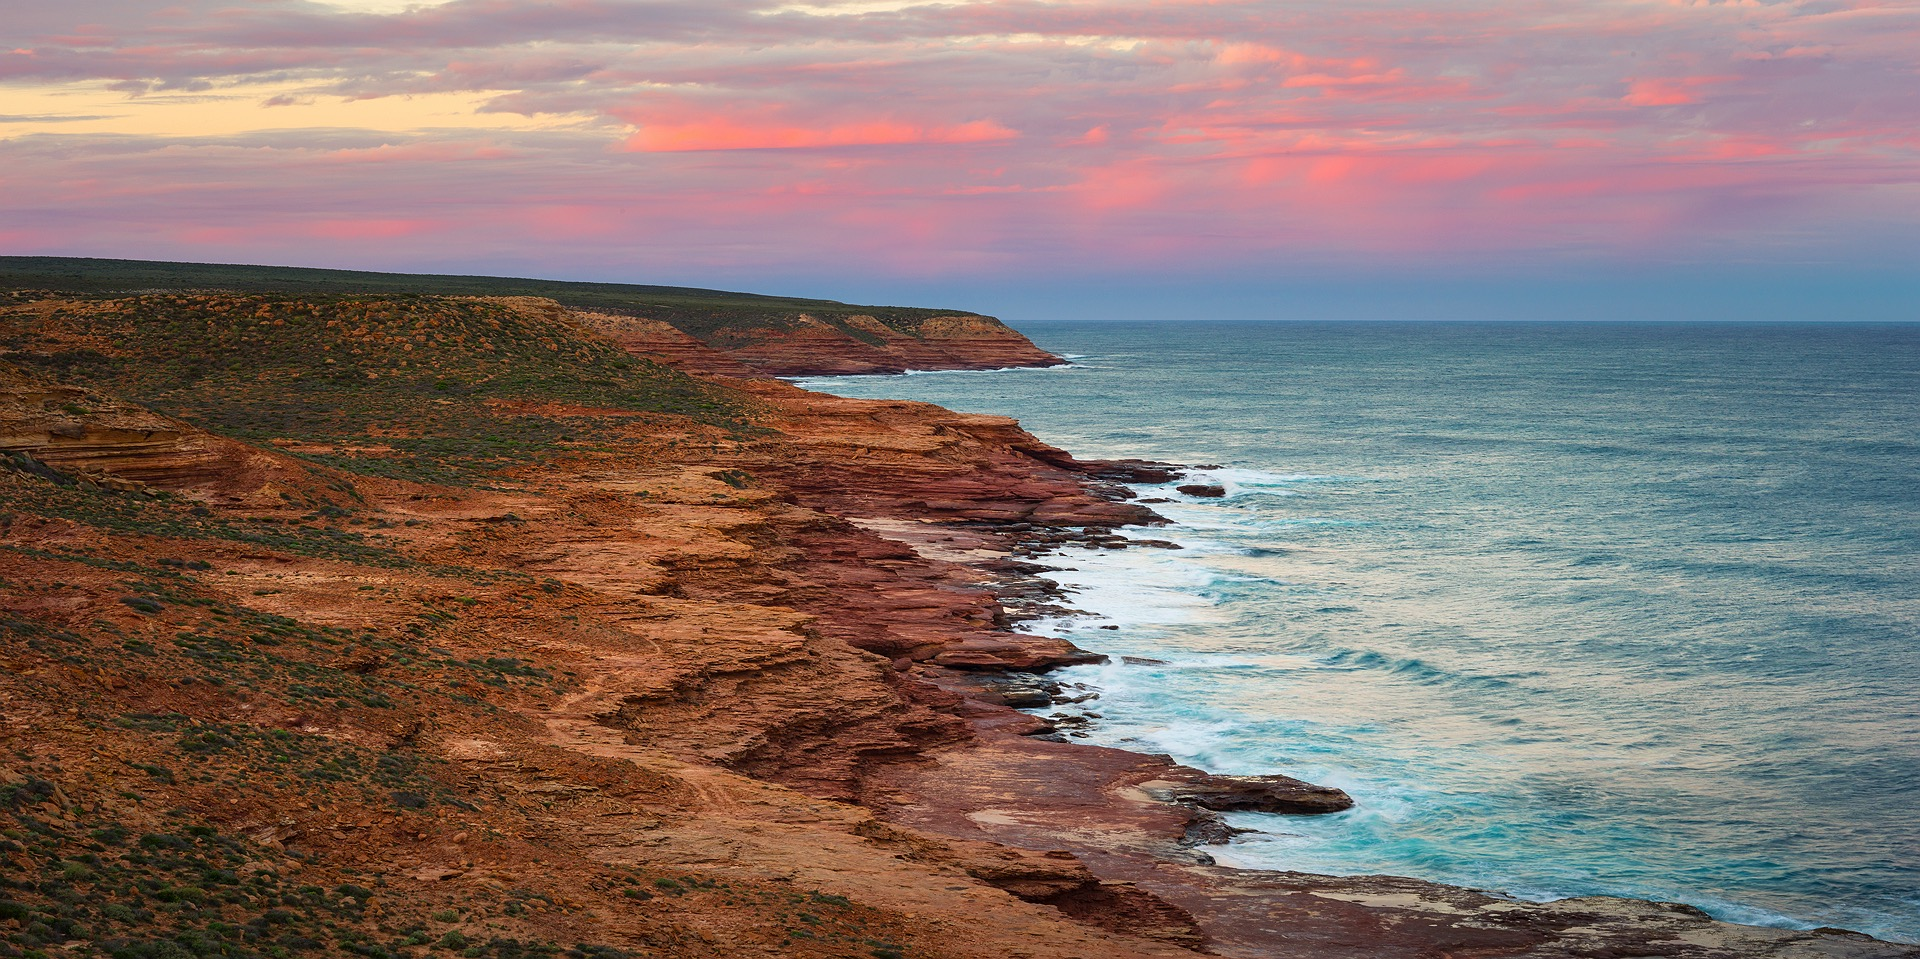 kalbarri_coastal_cliffs_02